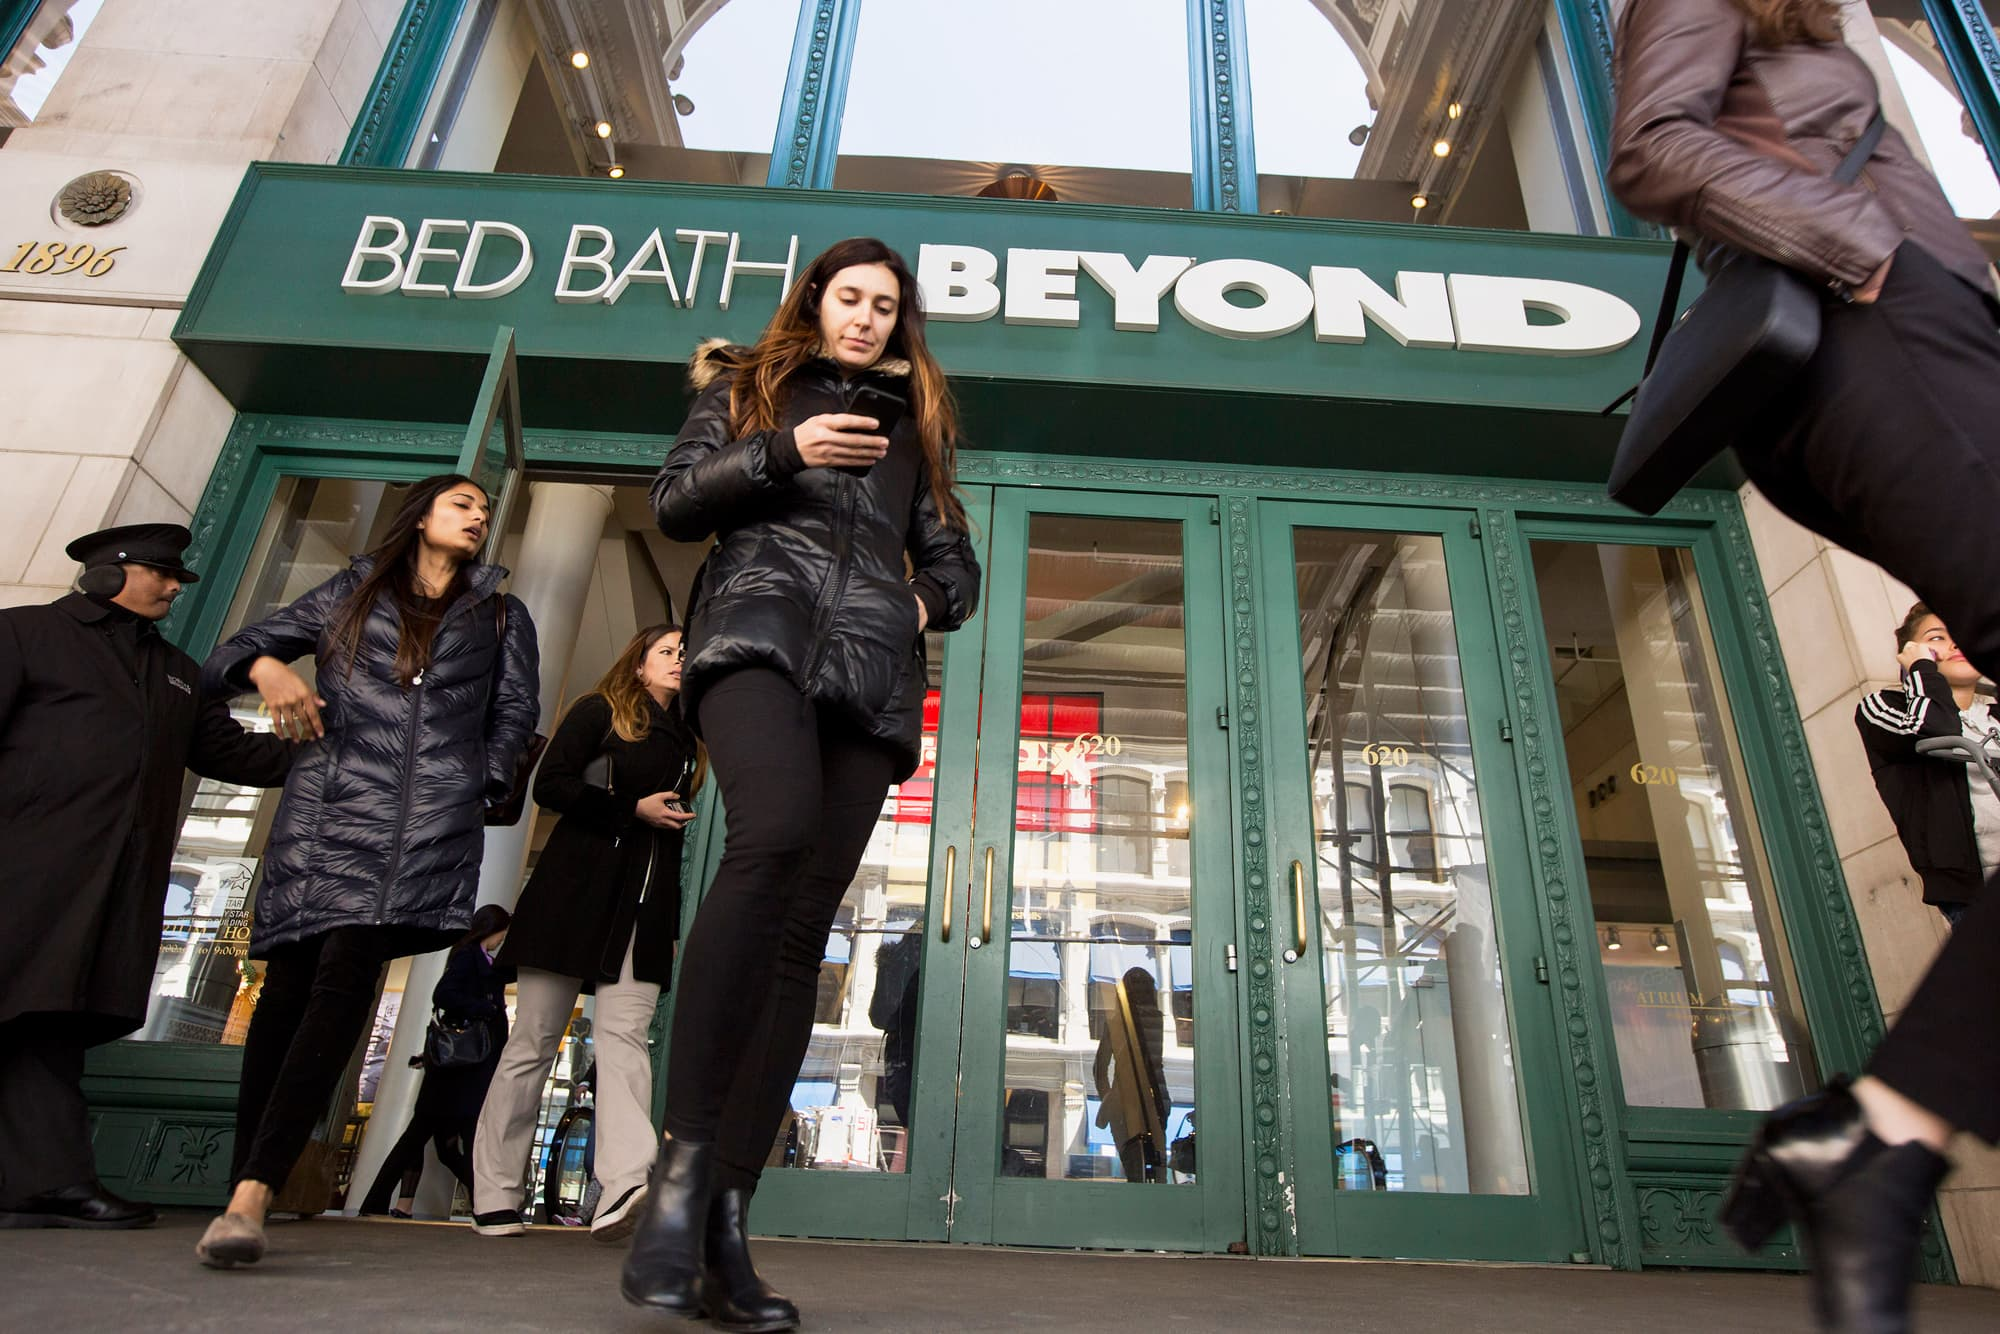 Bed Bath & Beyond (BBBY) reports Q4 2019 beat